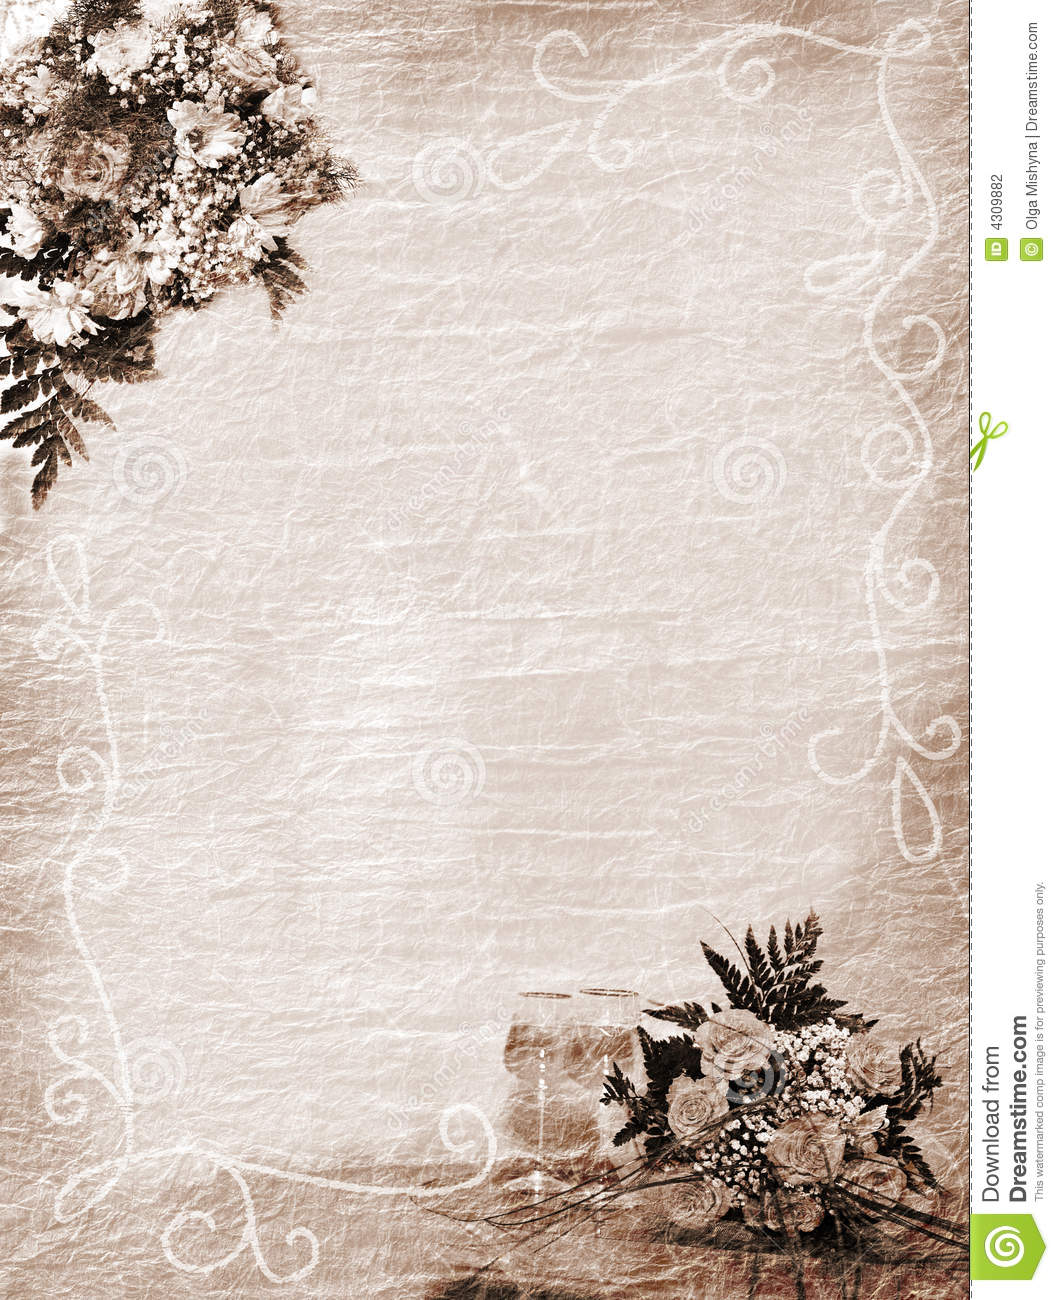 Wedding holiday or anniversary background stock